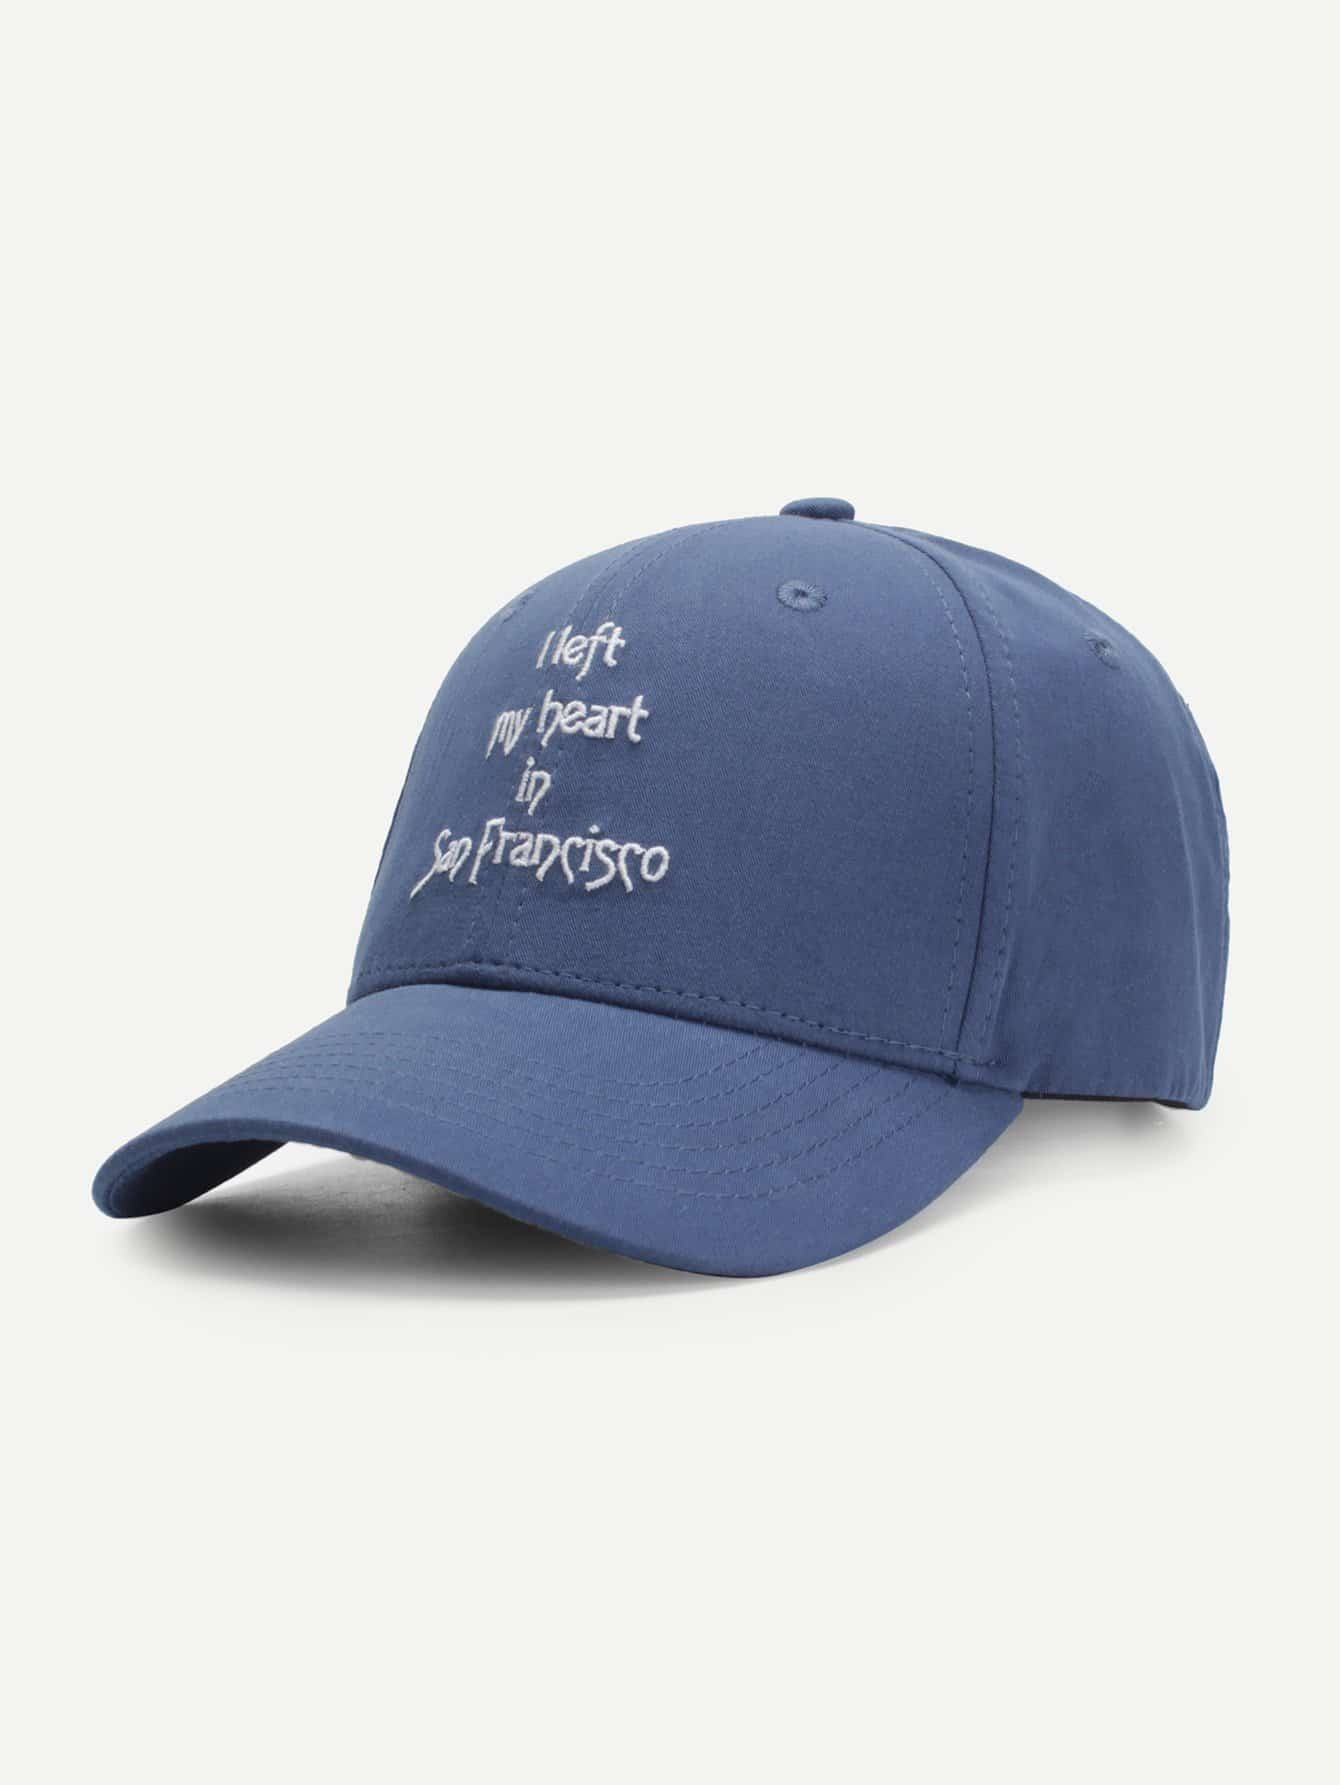 Embroidered Letter Baseball Cap embroidered letter baseball cap